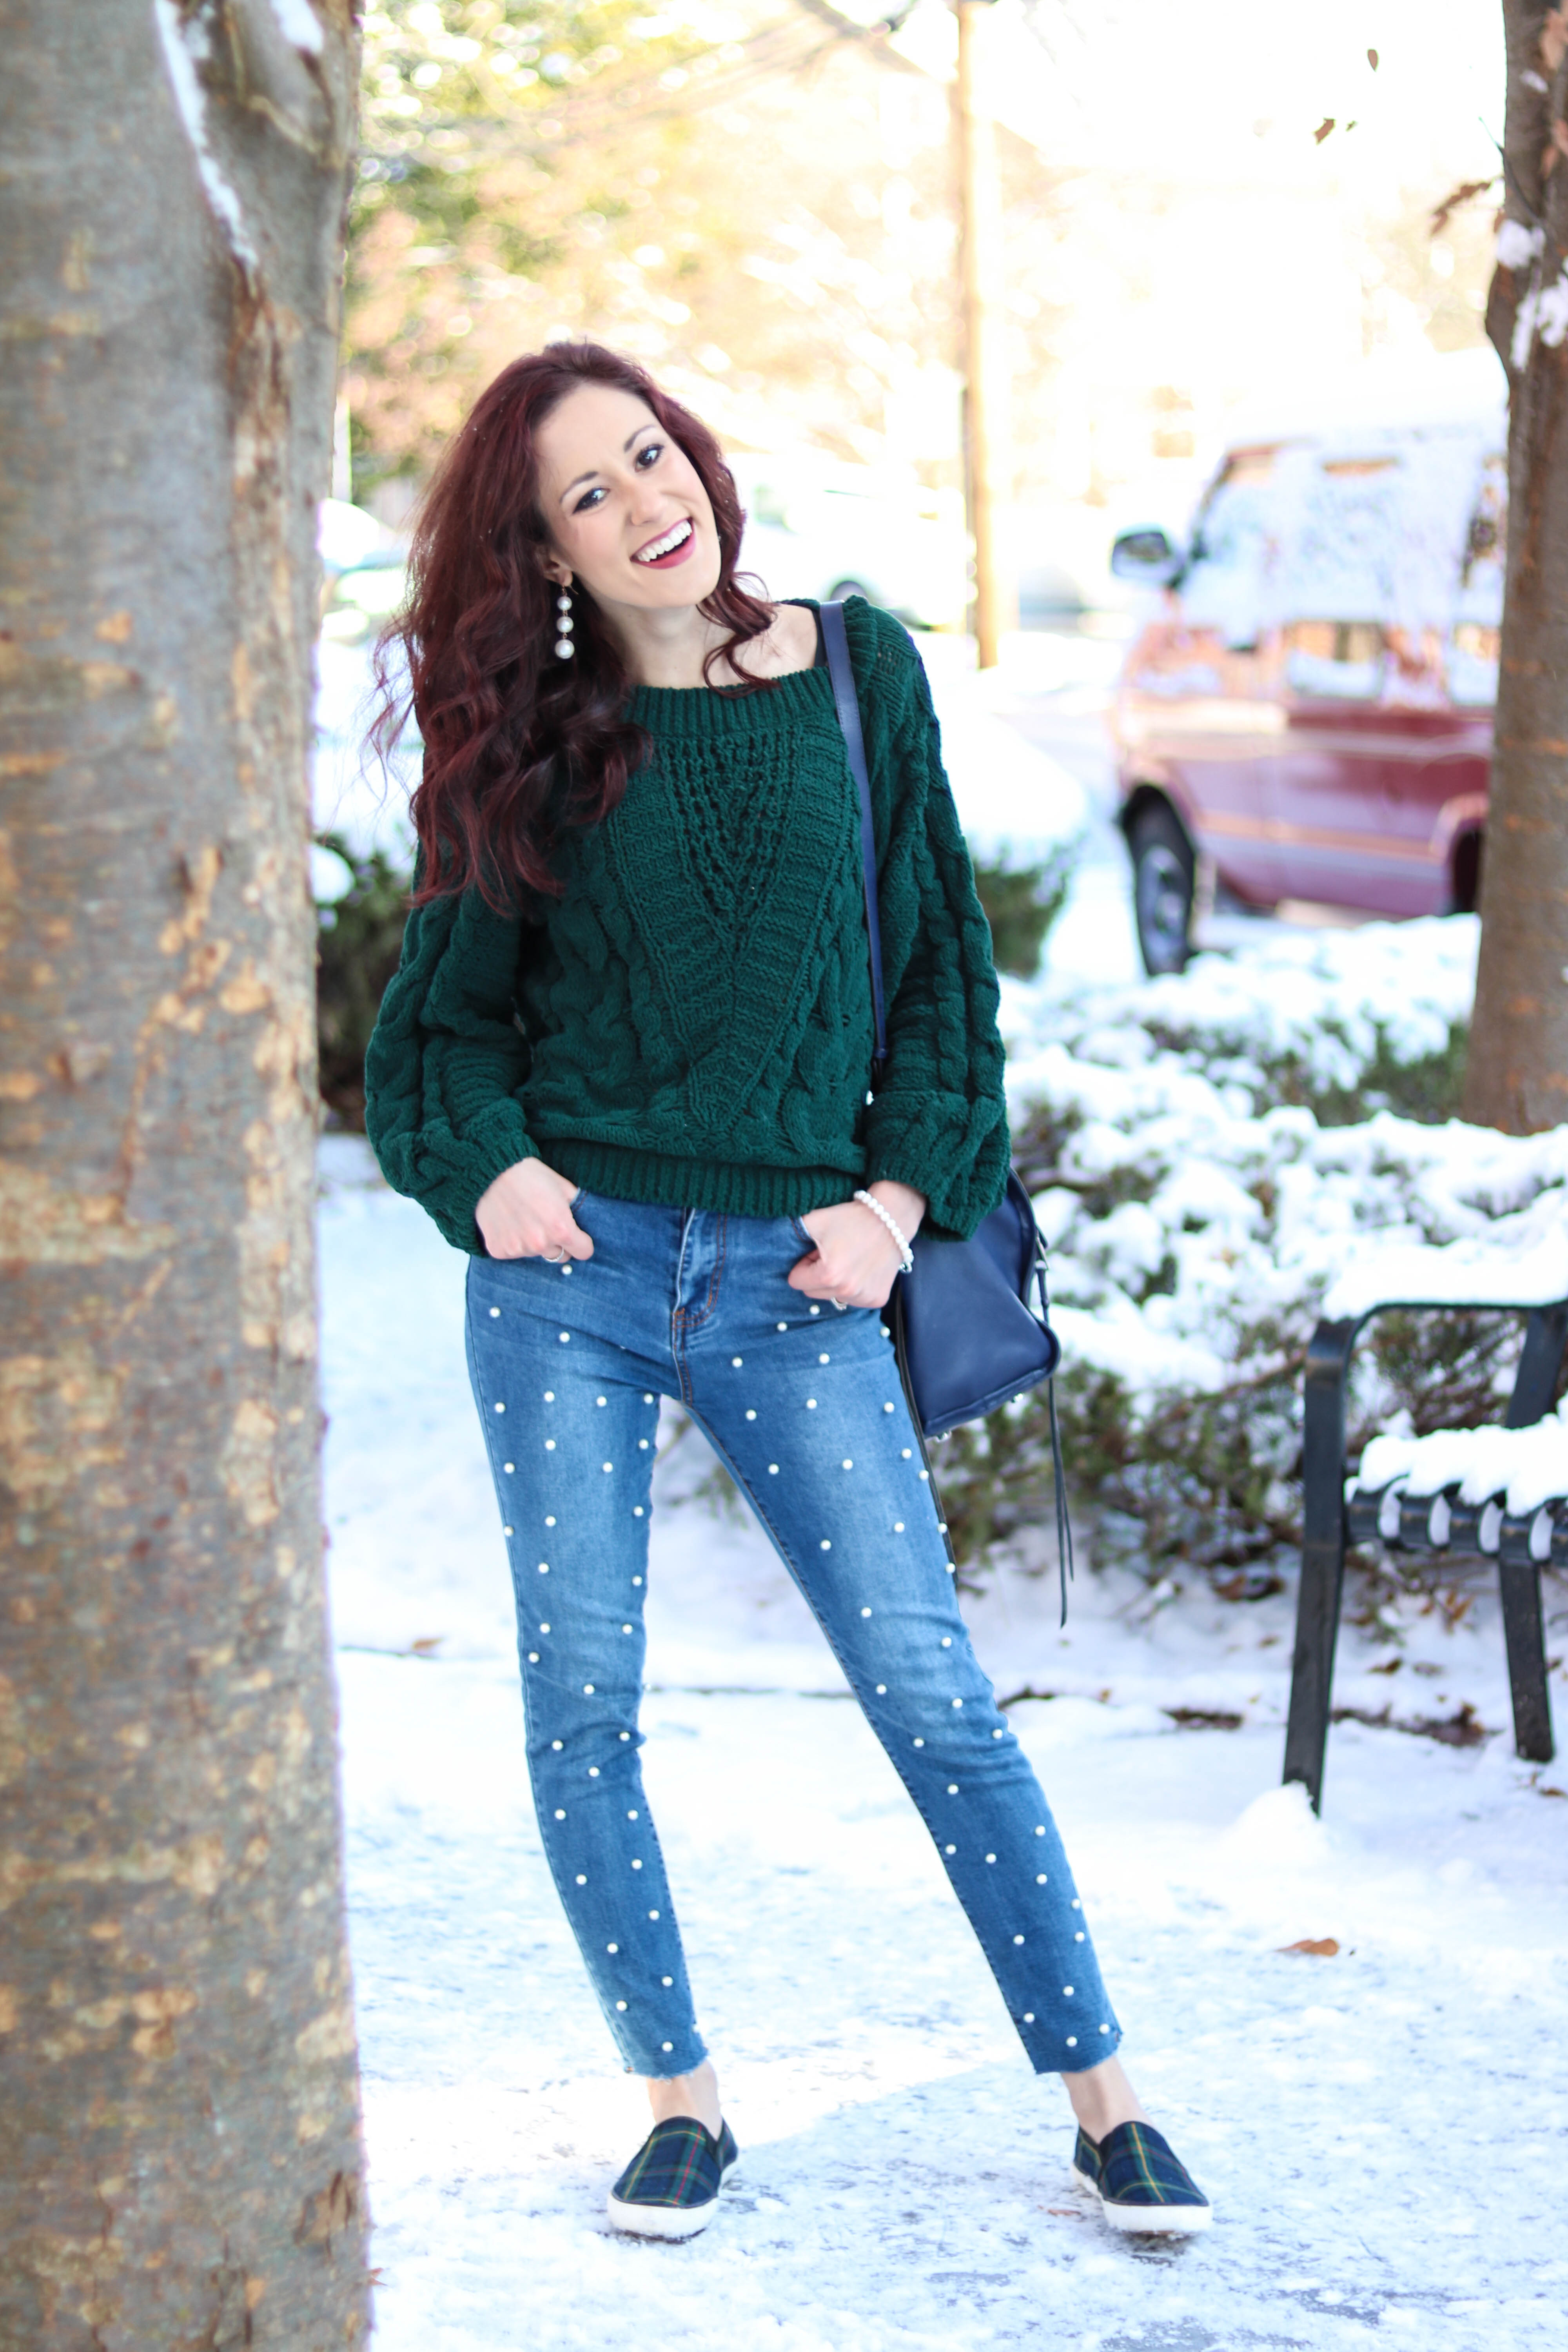 1bea9d4f2 Pearl Jeans: A Trend To Try | Fashion & Style | Coming Up Roses